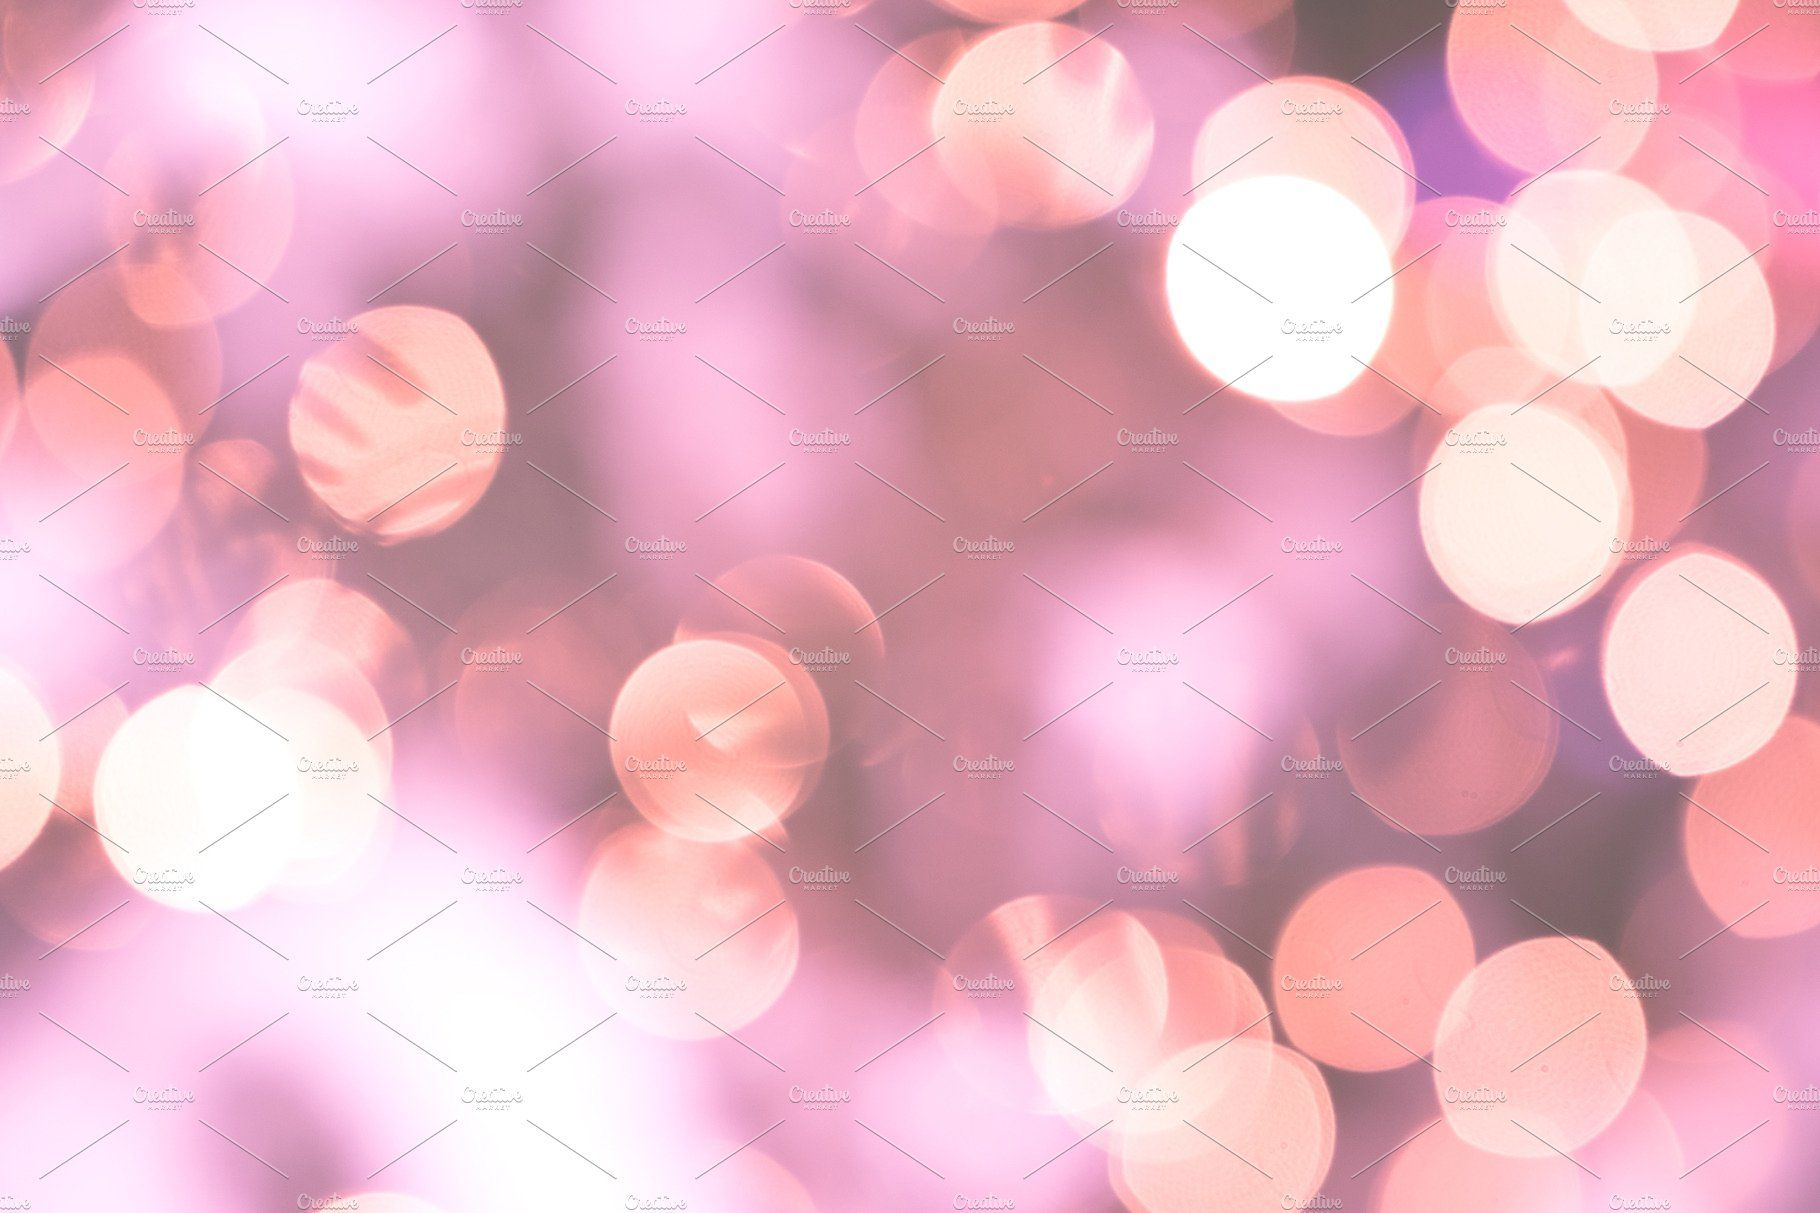 Bokeh Lights Glamour Pink Background By Lum3n On Creativemarket Pink Background Pink Christmas Background Bokeh Lights